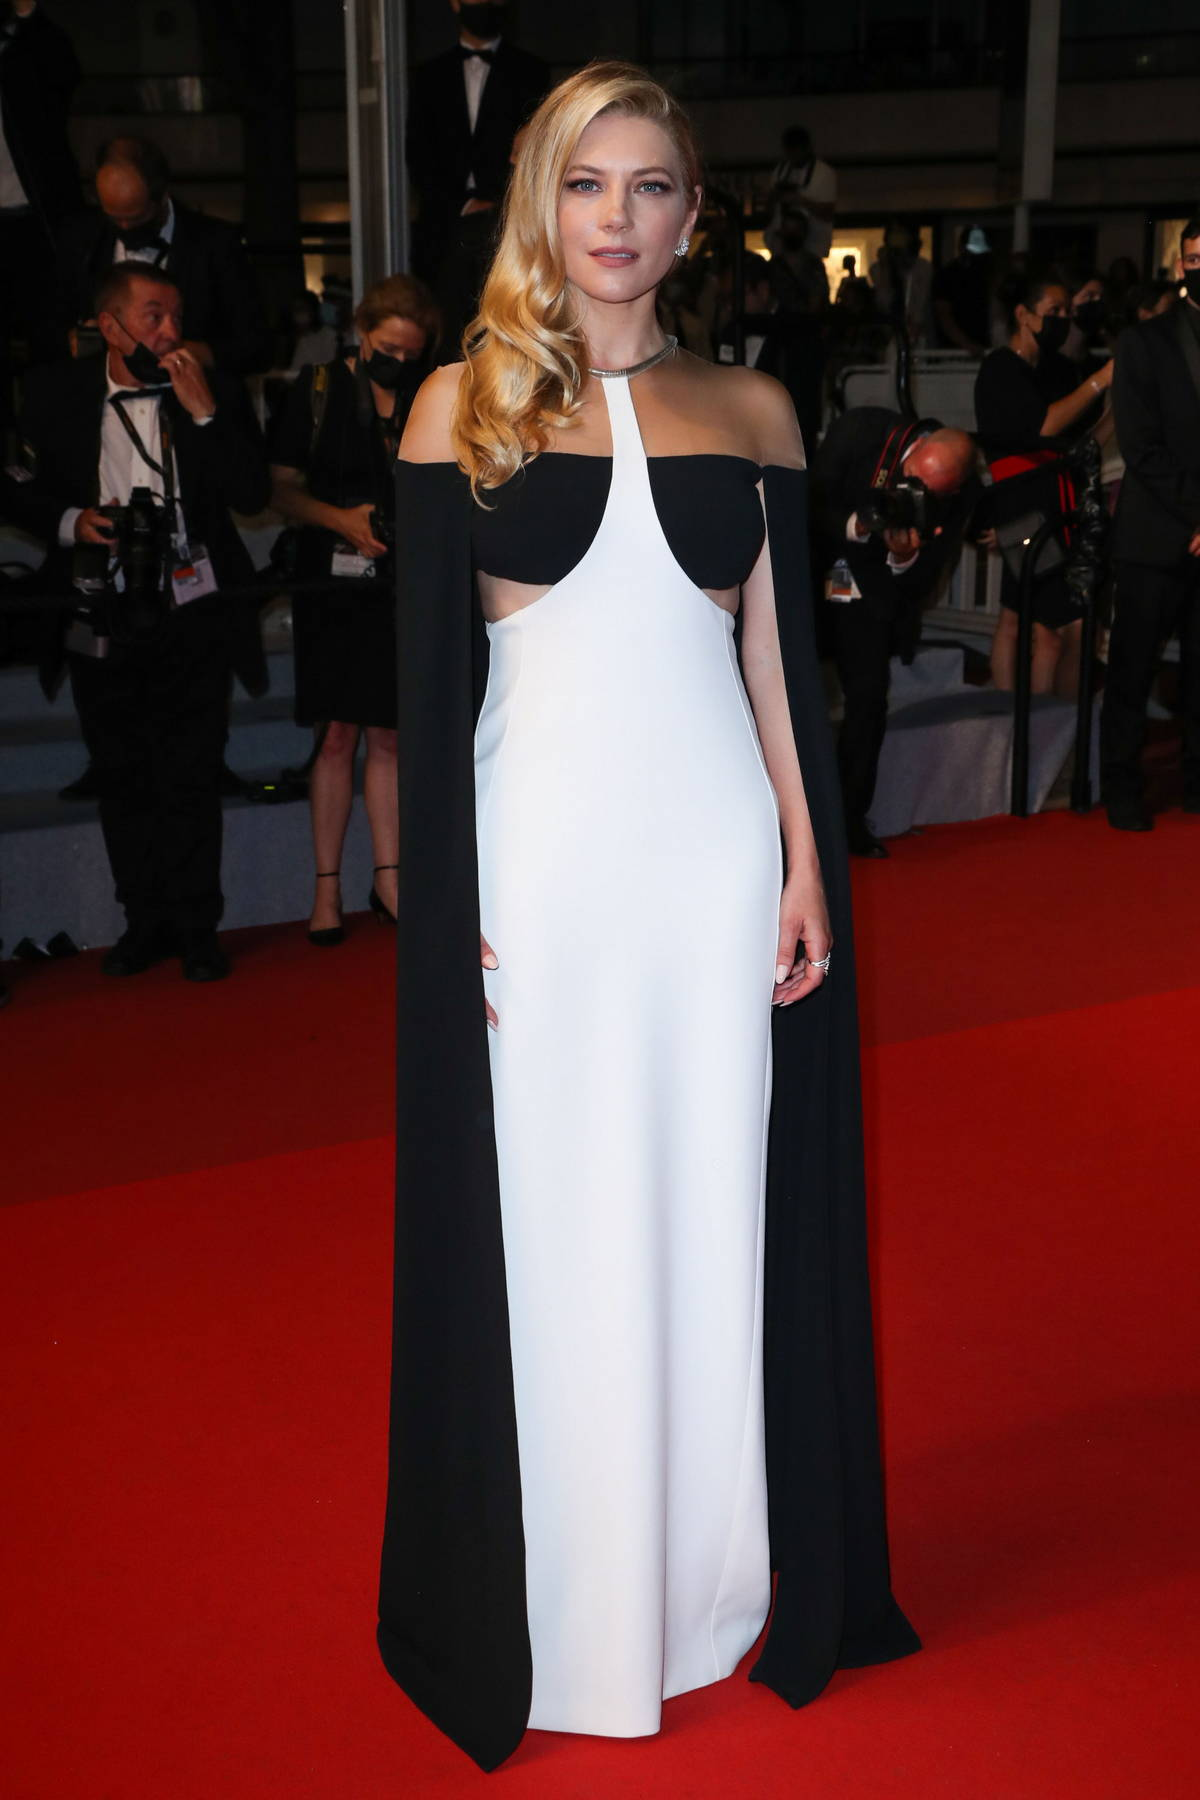 Katheryn Winnick attends the Premiere of 'Flag Day' during the 74th annual Cannes Film Festival in Cannes, France